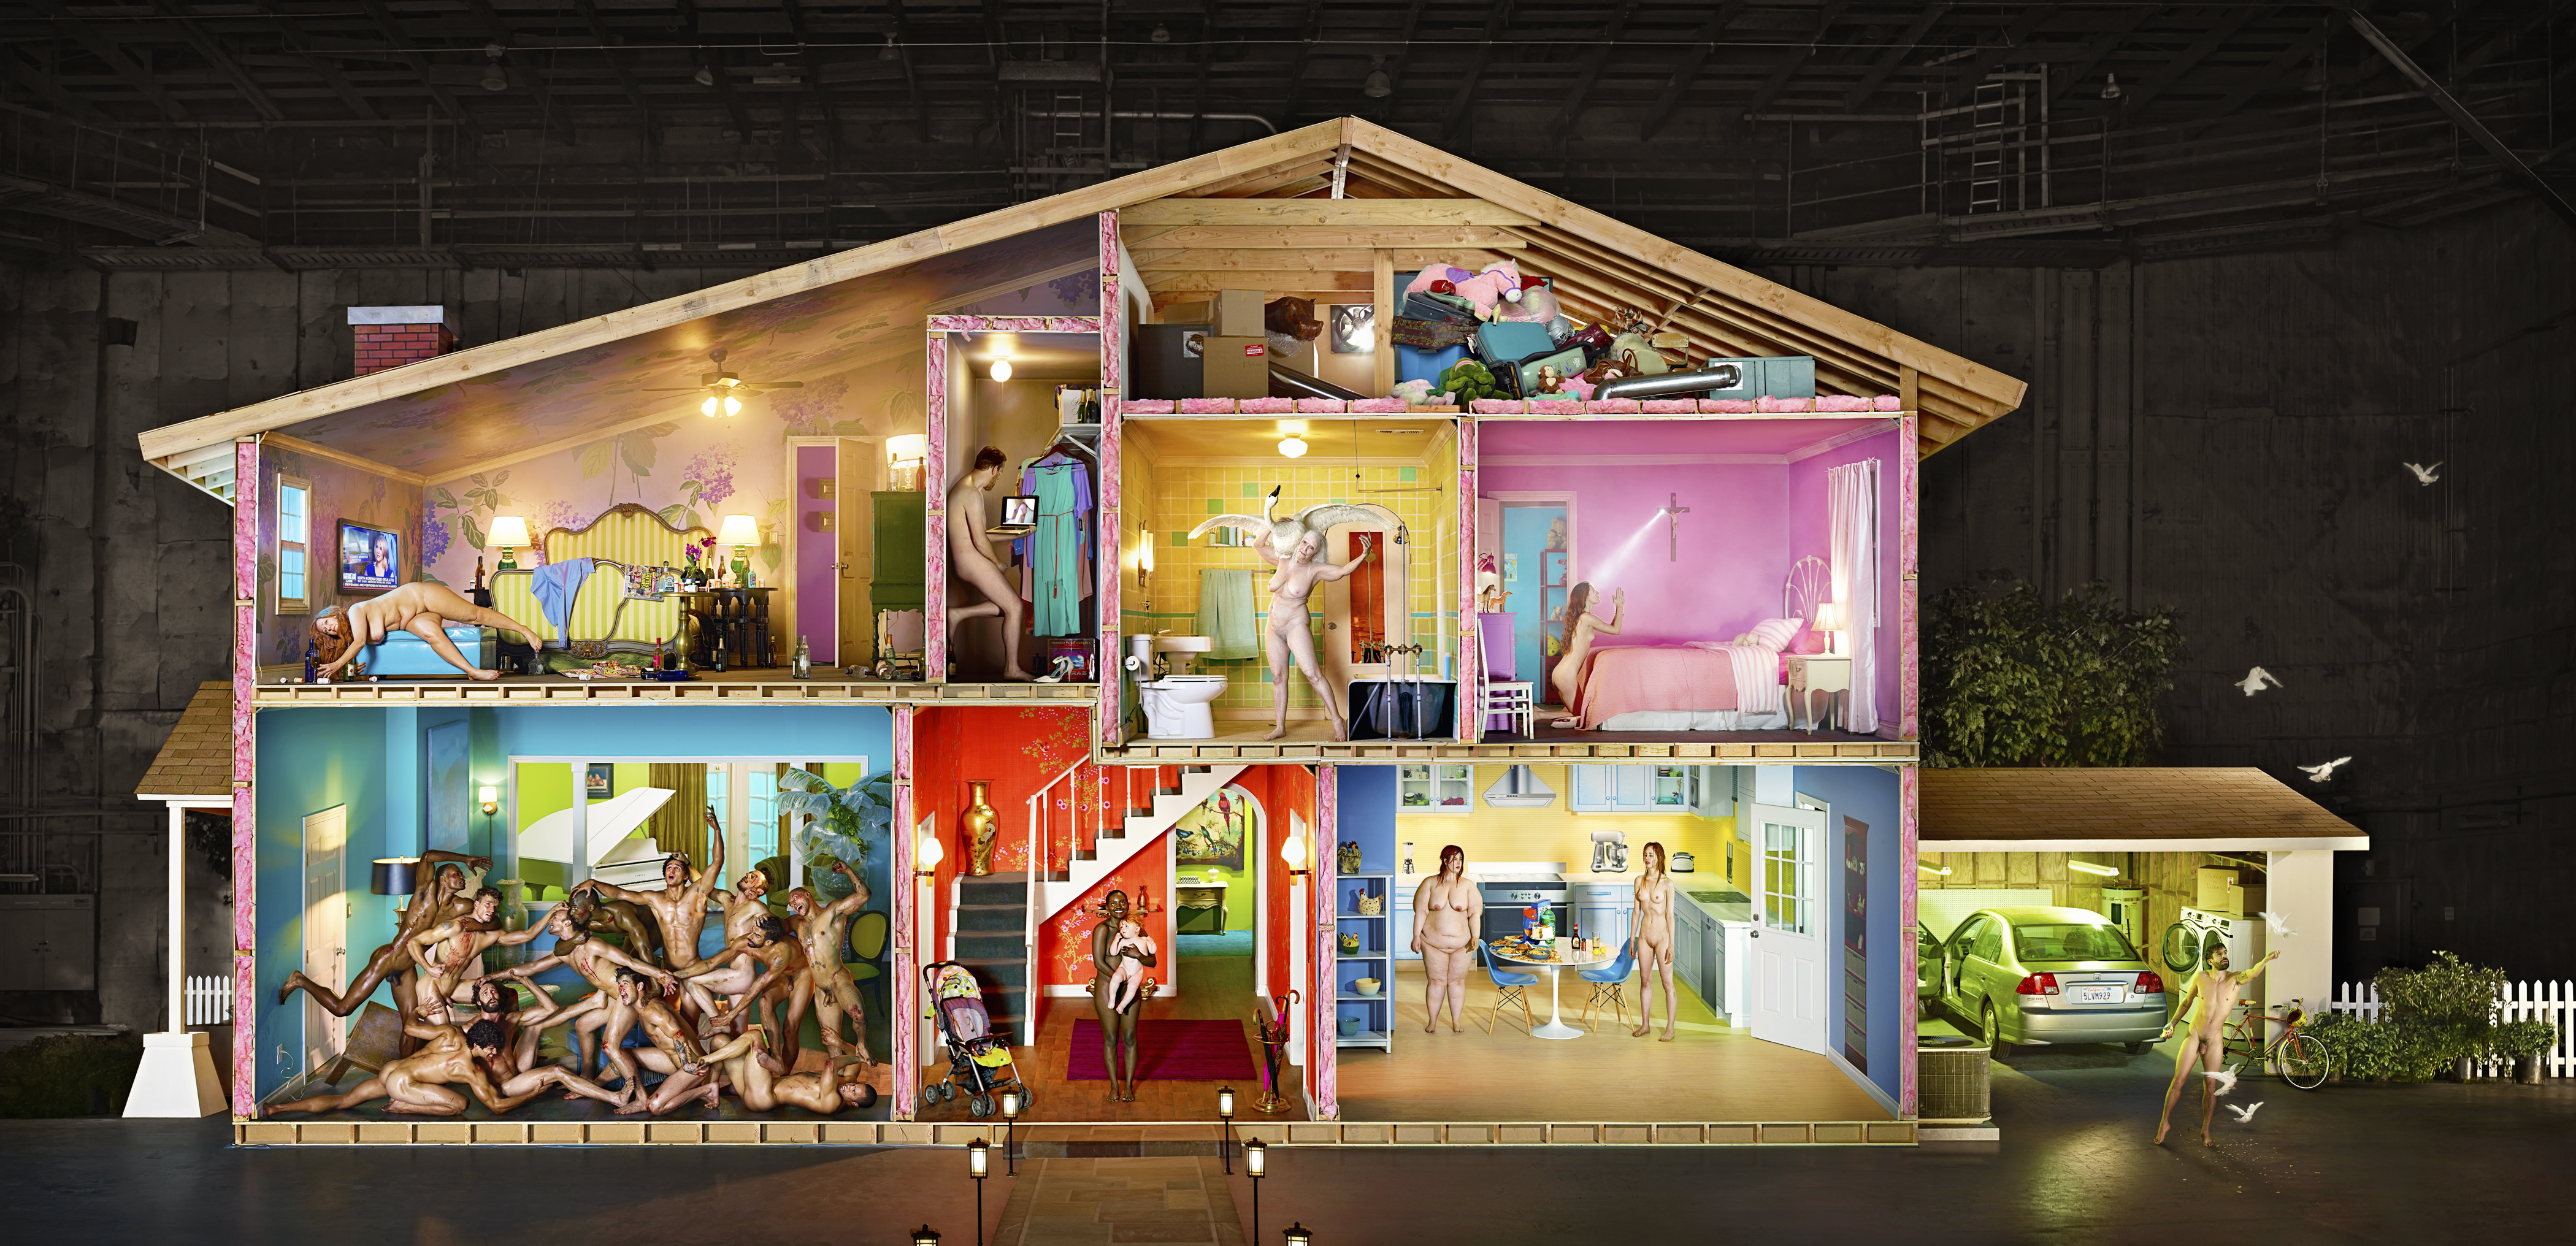 David Lachapelle self portrait as house